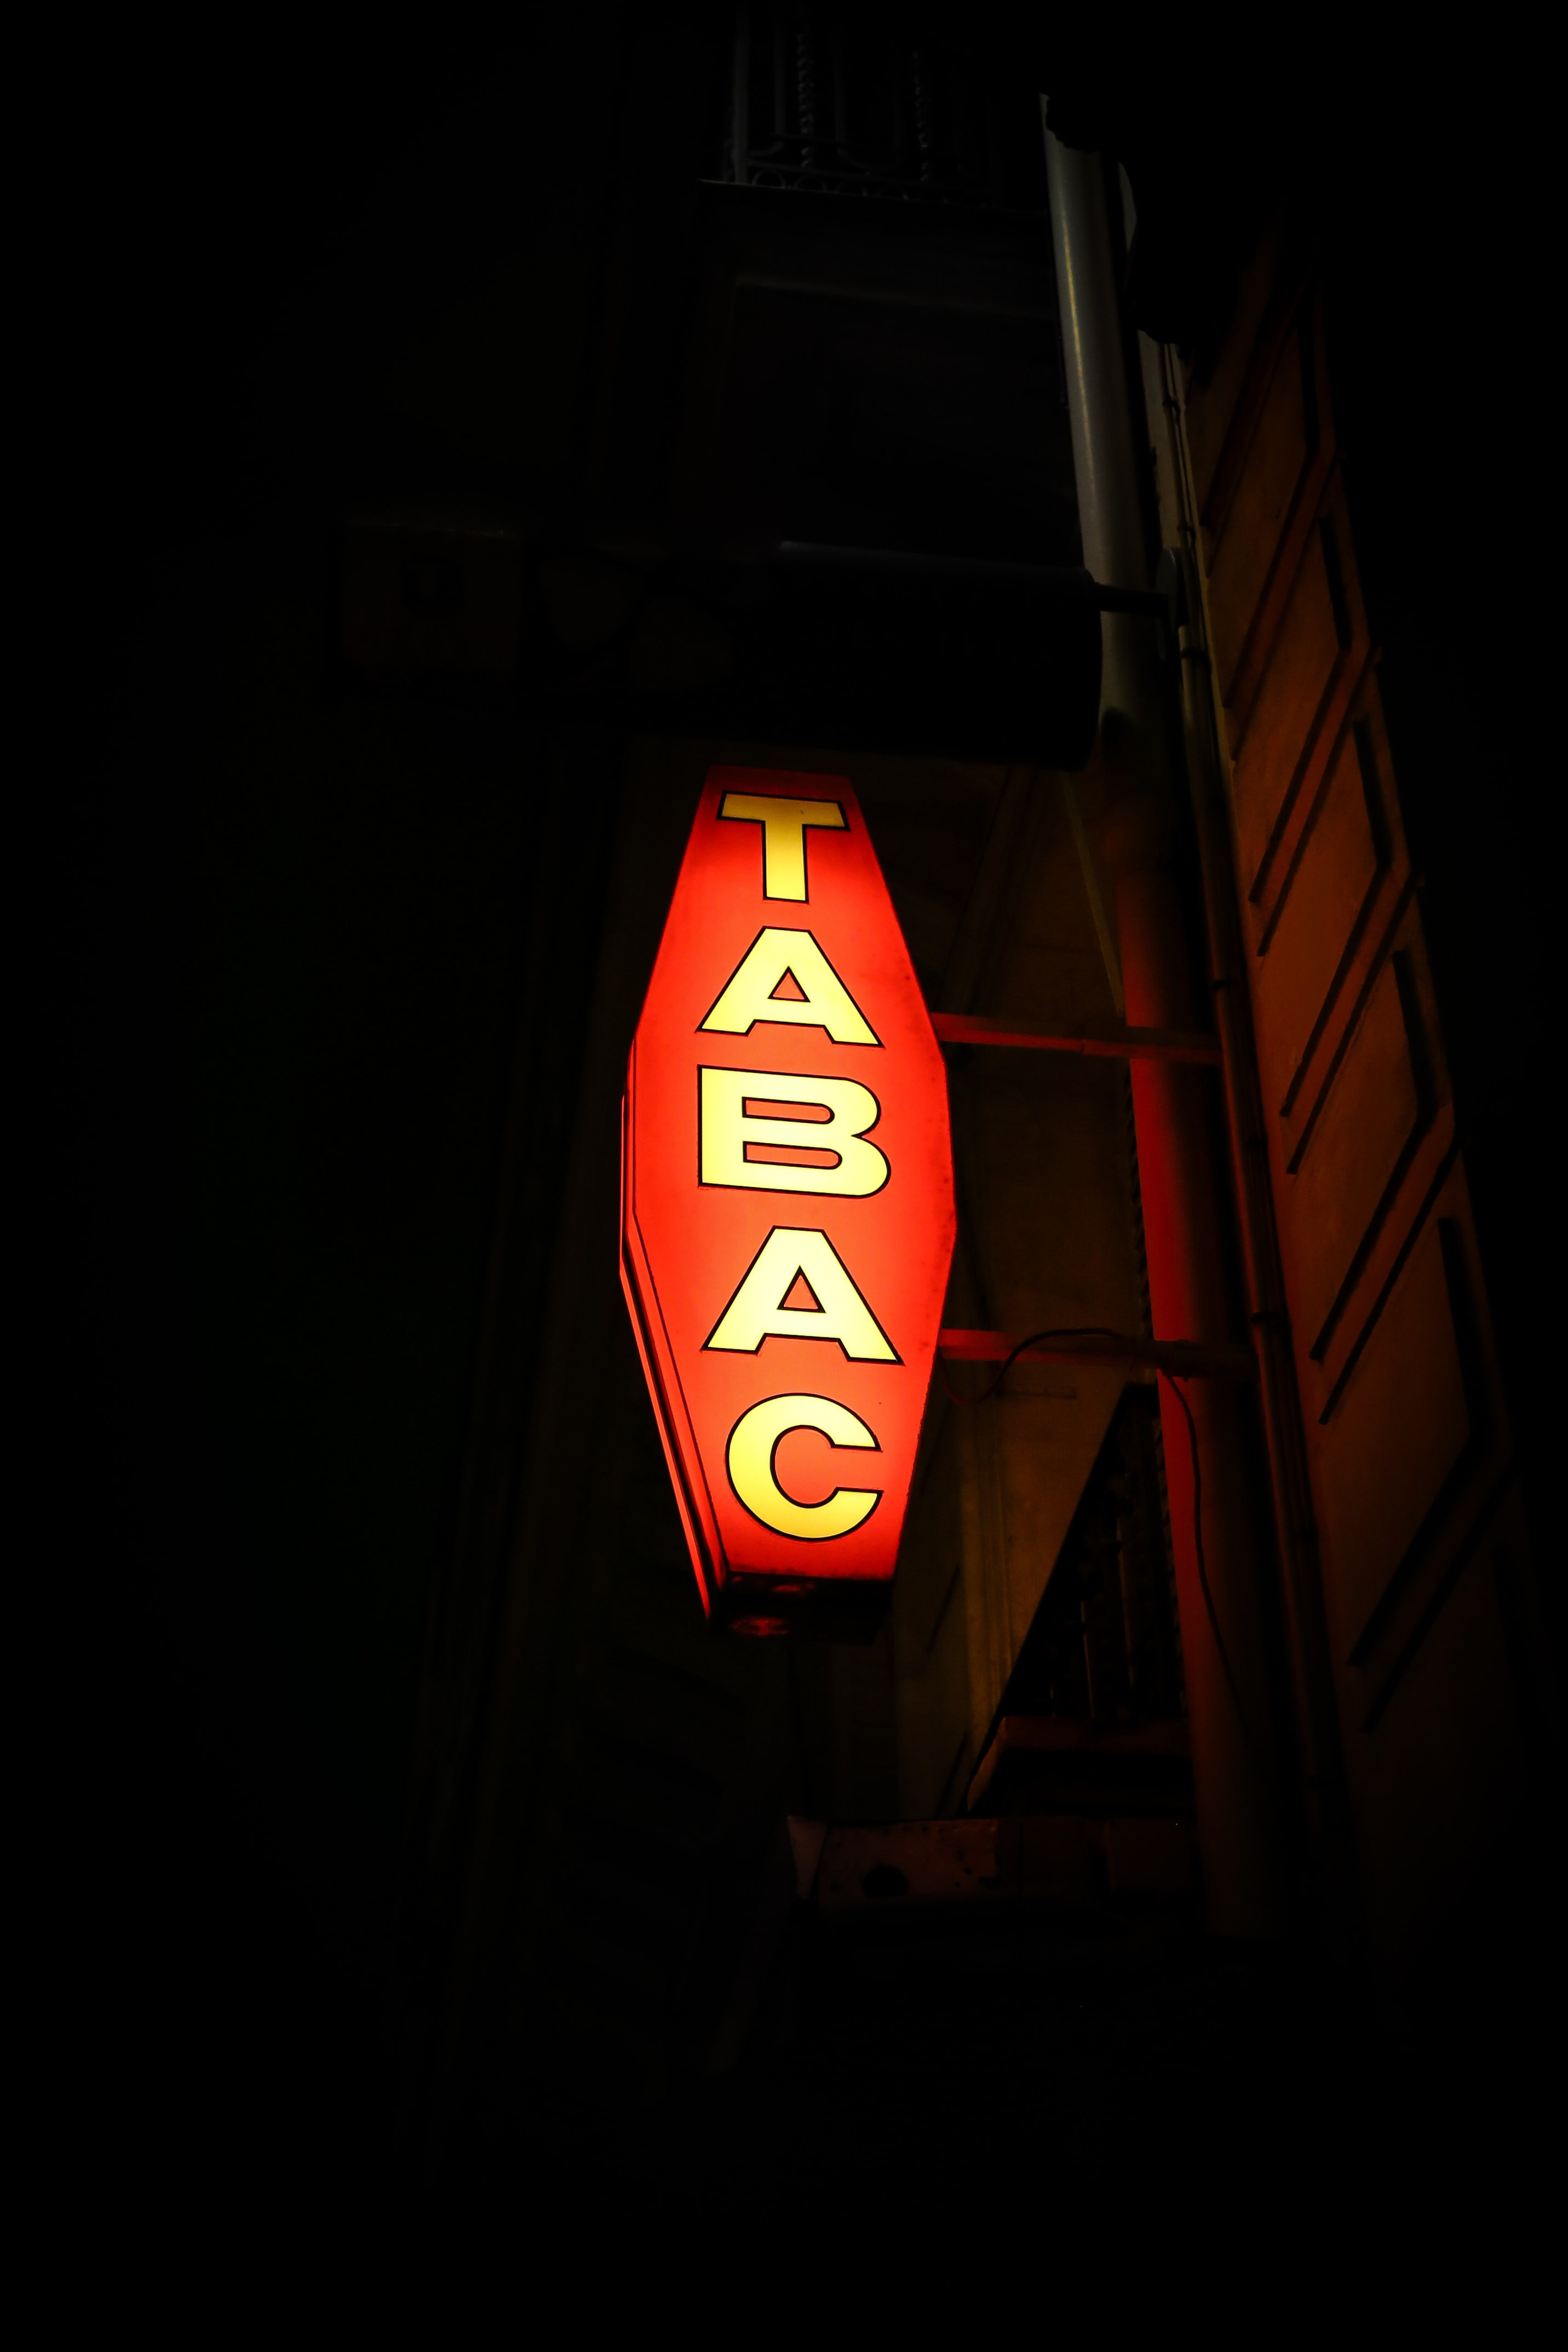 Tabac sign